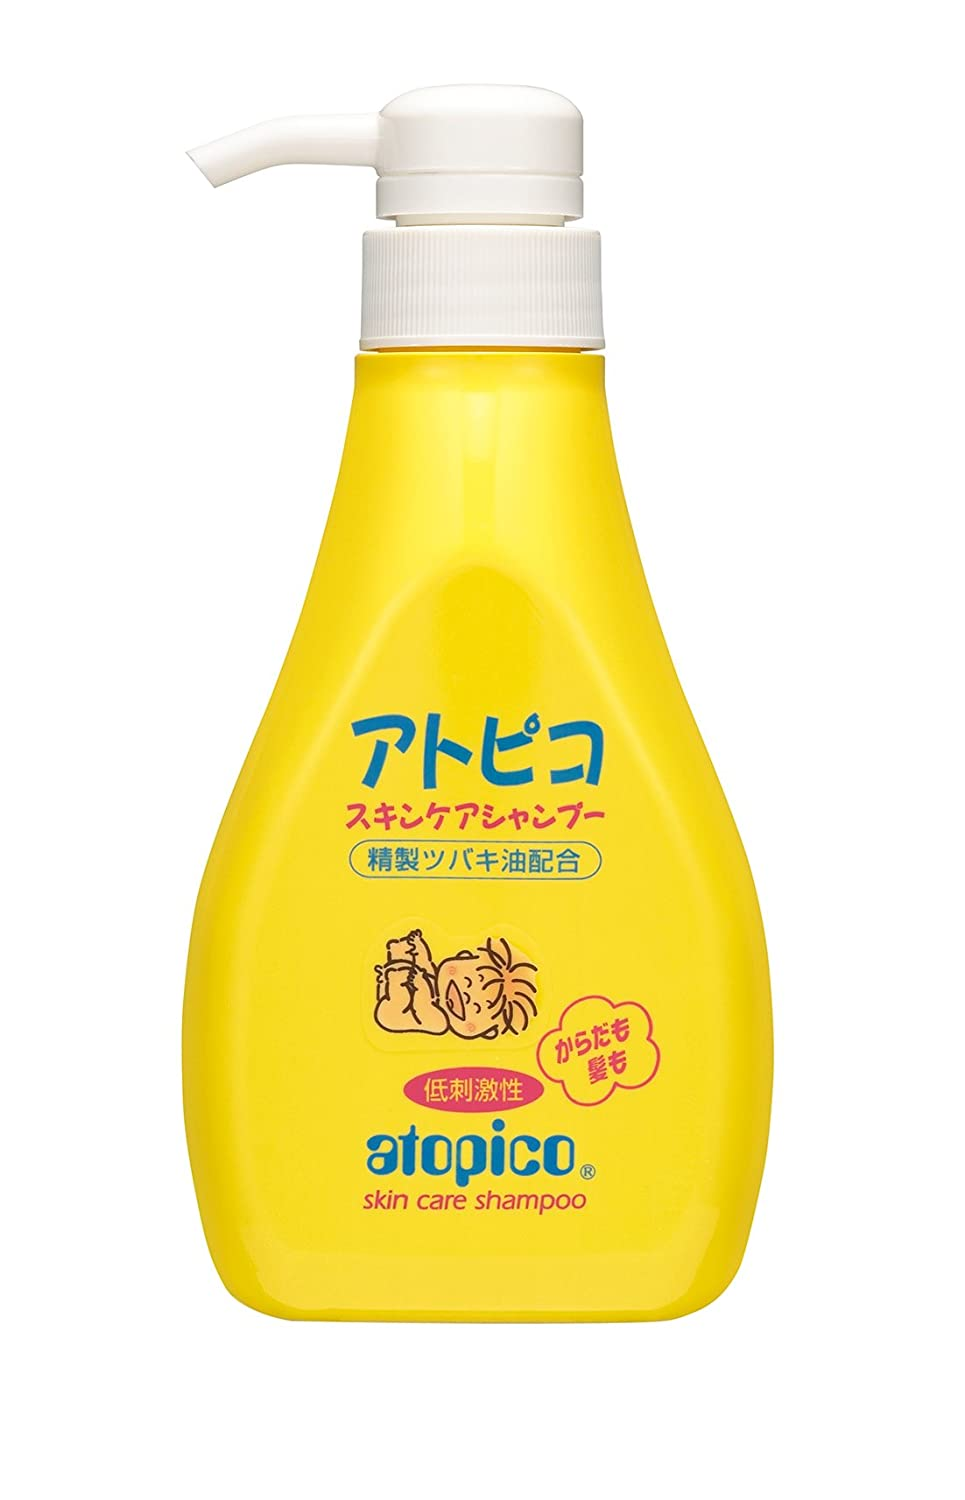 Japanese Atopico Baby Skin Care Shampoo with Camellia Oil - 400ml Pump